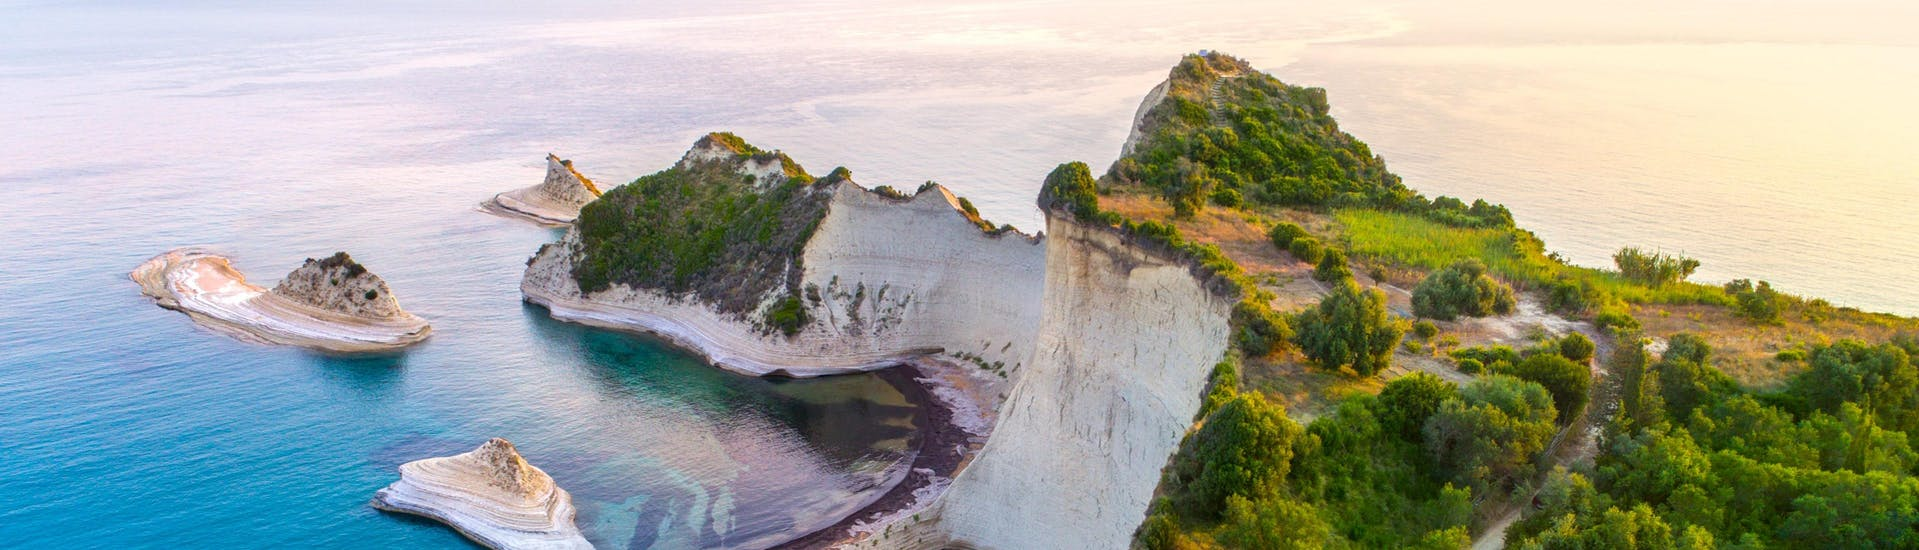 An image of beautiful Cape Drastis, one of the places one might visit on a boat trip in Corfu.